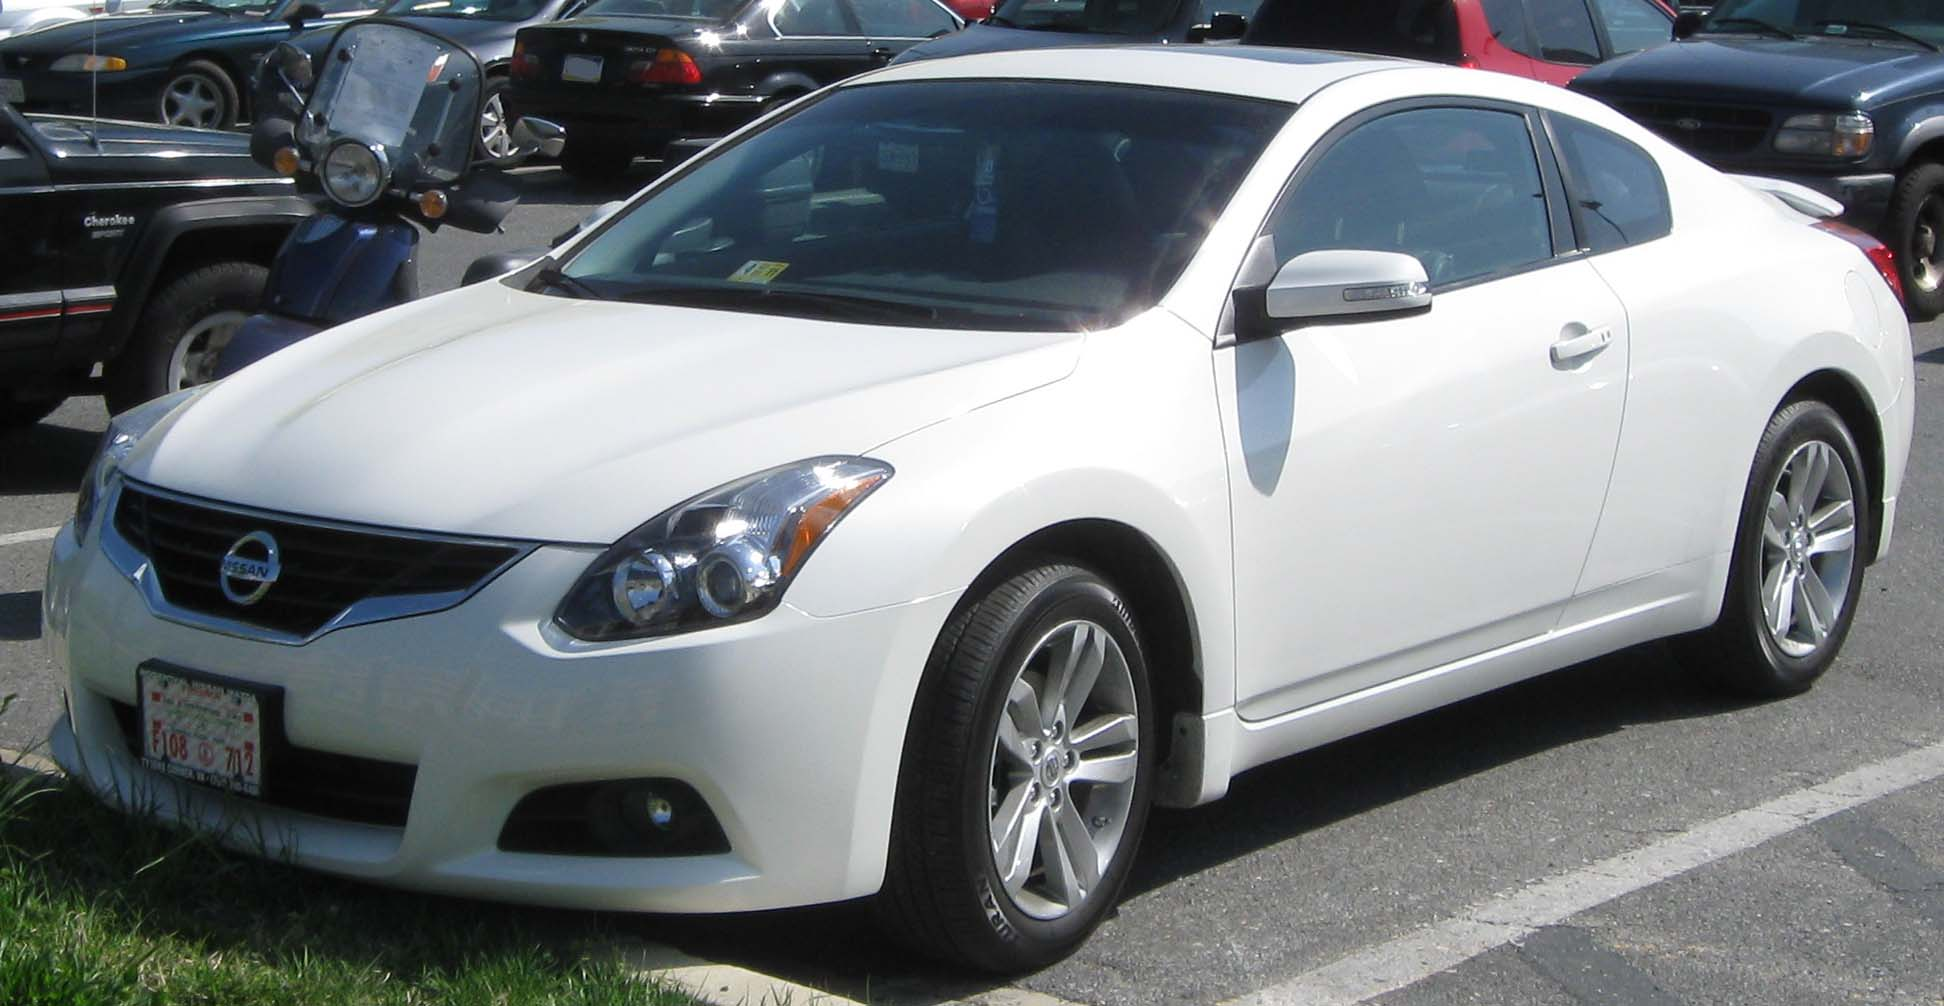 vehiclesearchresults new orleans search nissan vehicles used for to sale dp hammond buick drivers at downing gmc ross